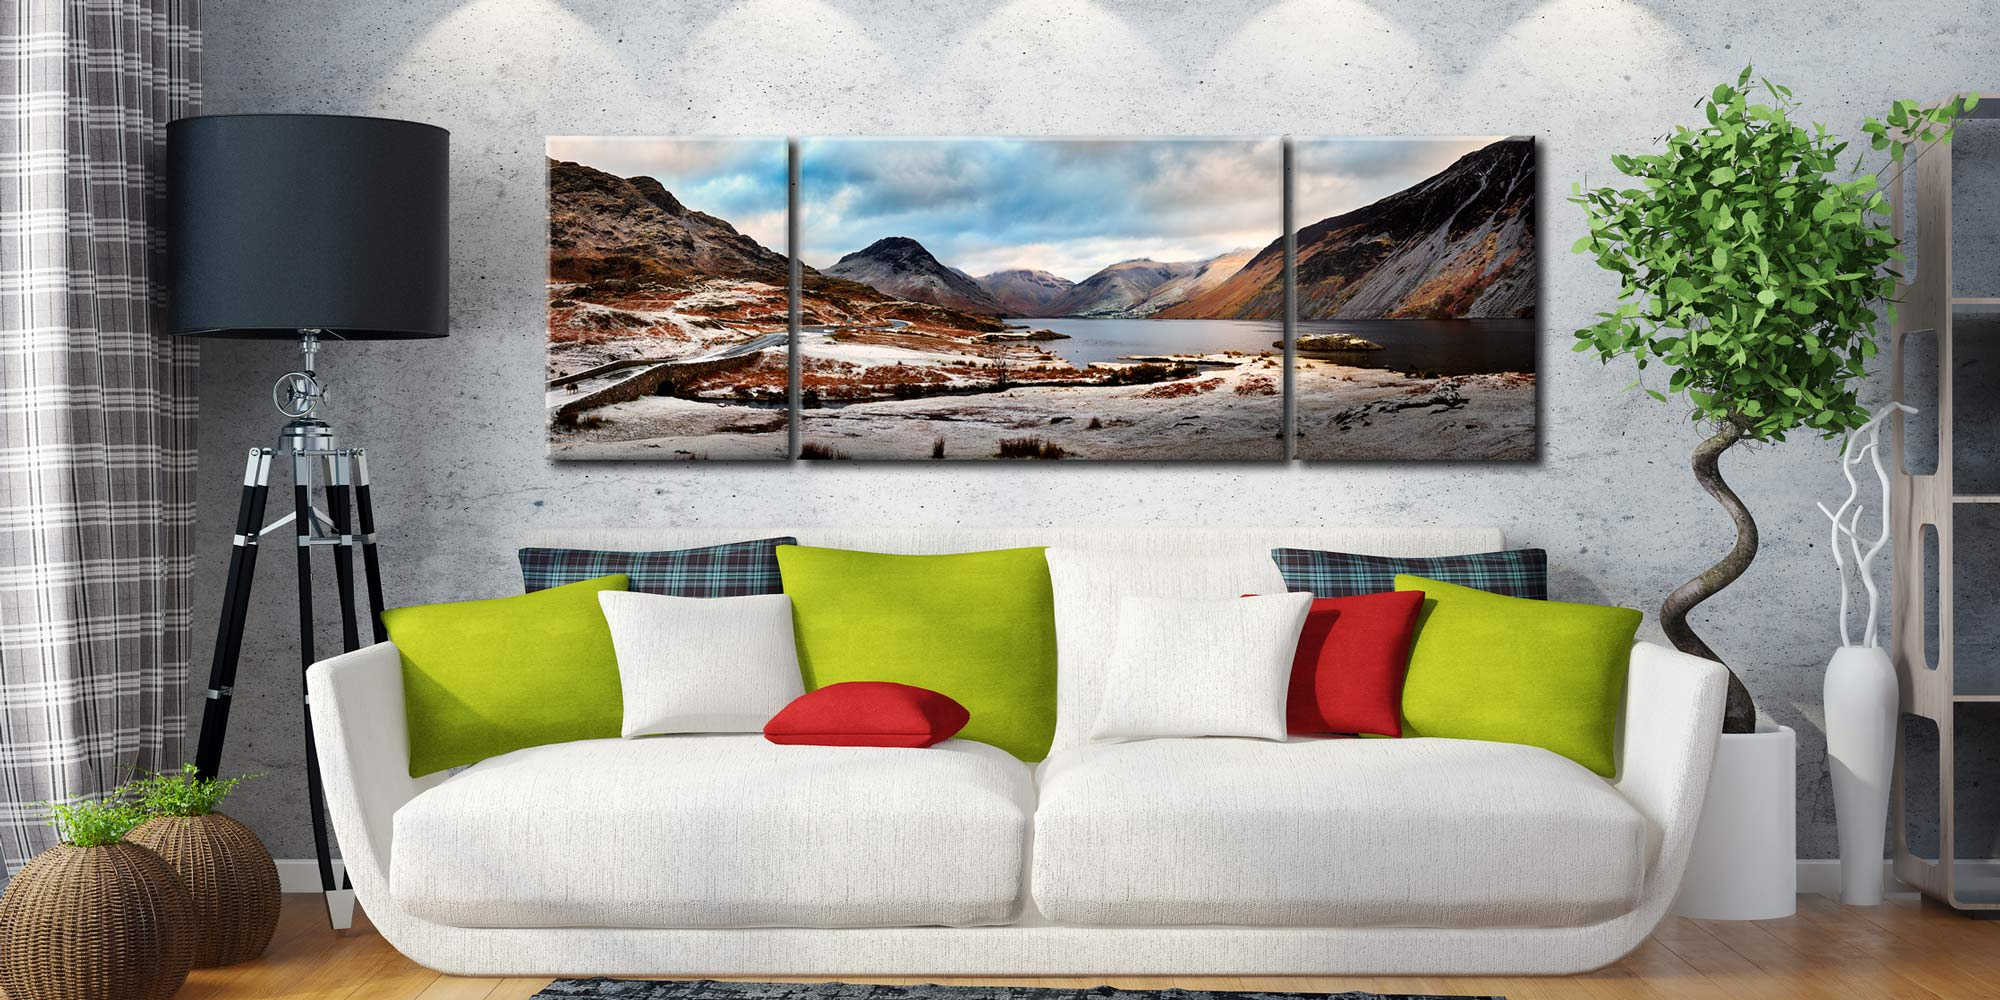 Snowy Day at Wast Water - 3 Panel Wide Mid Canvas on Wall